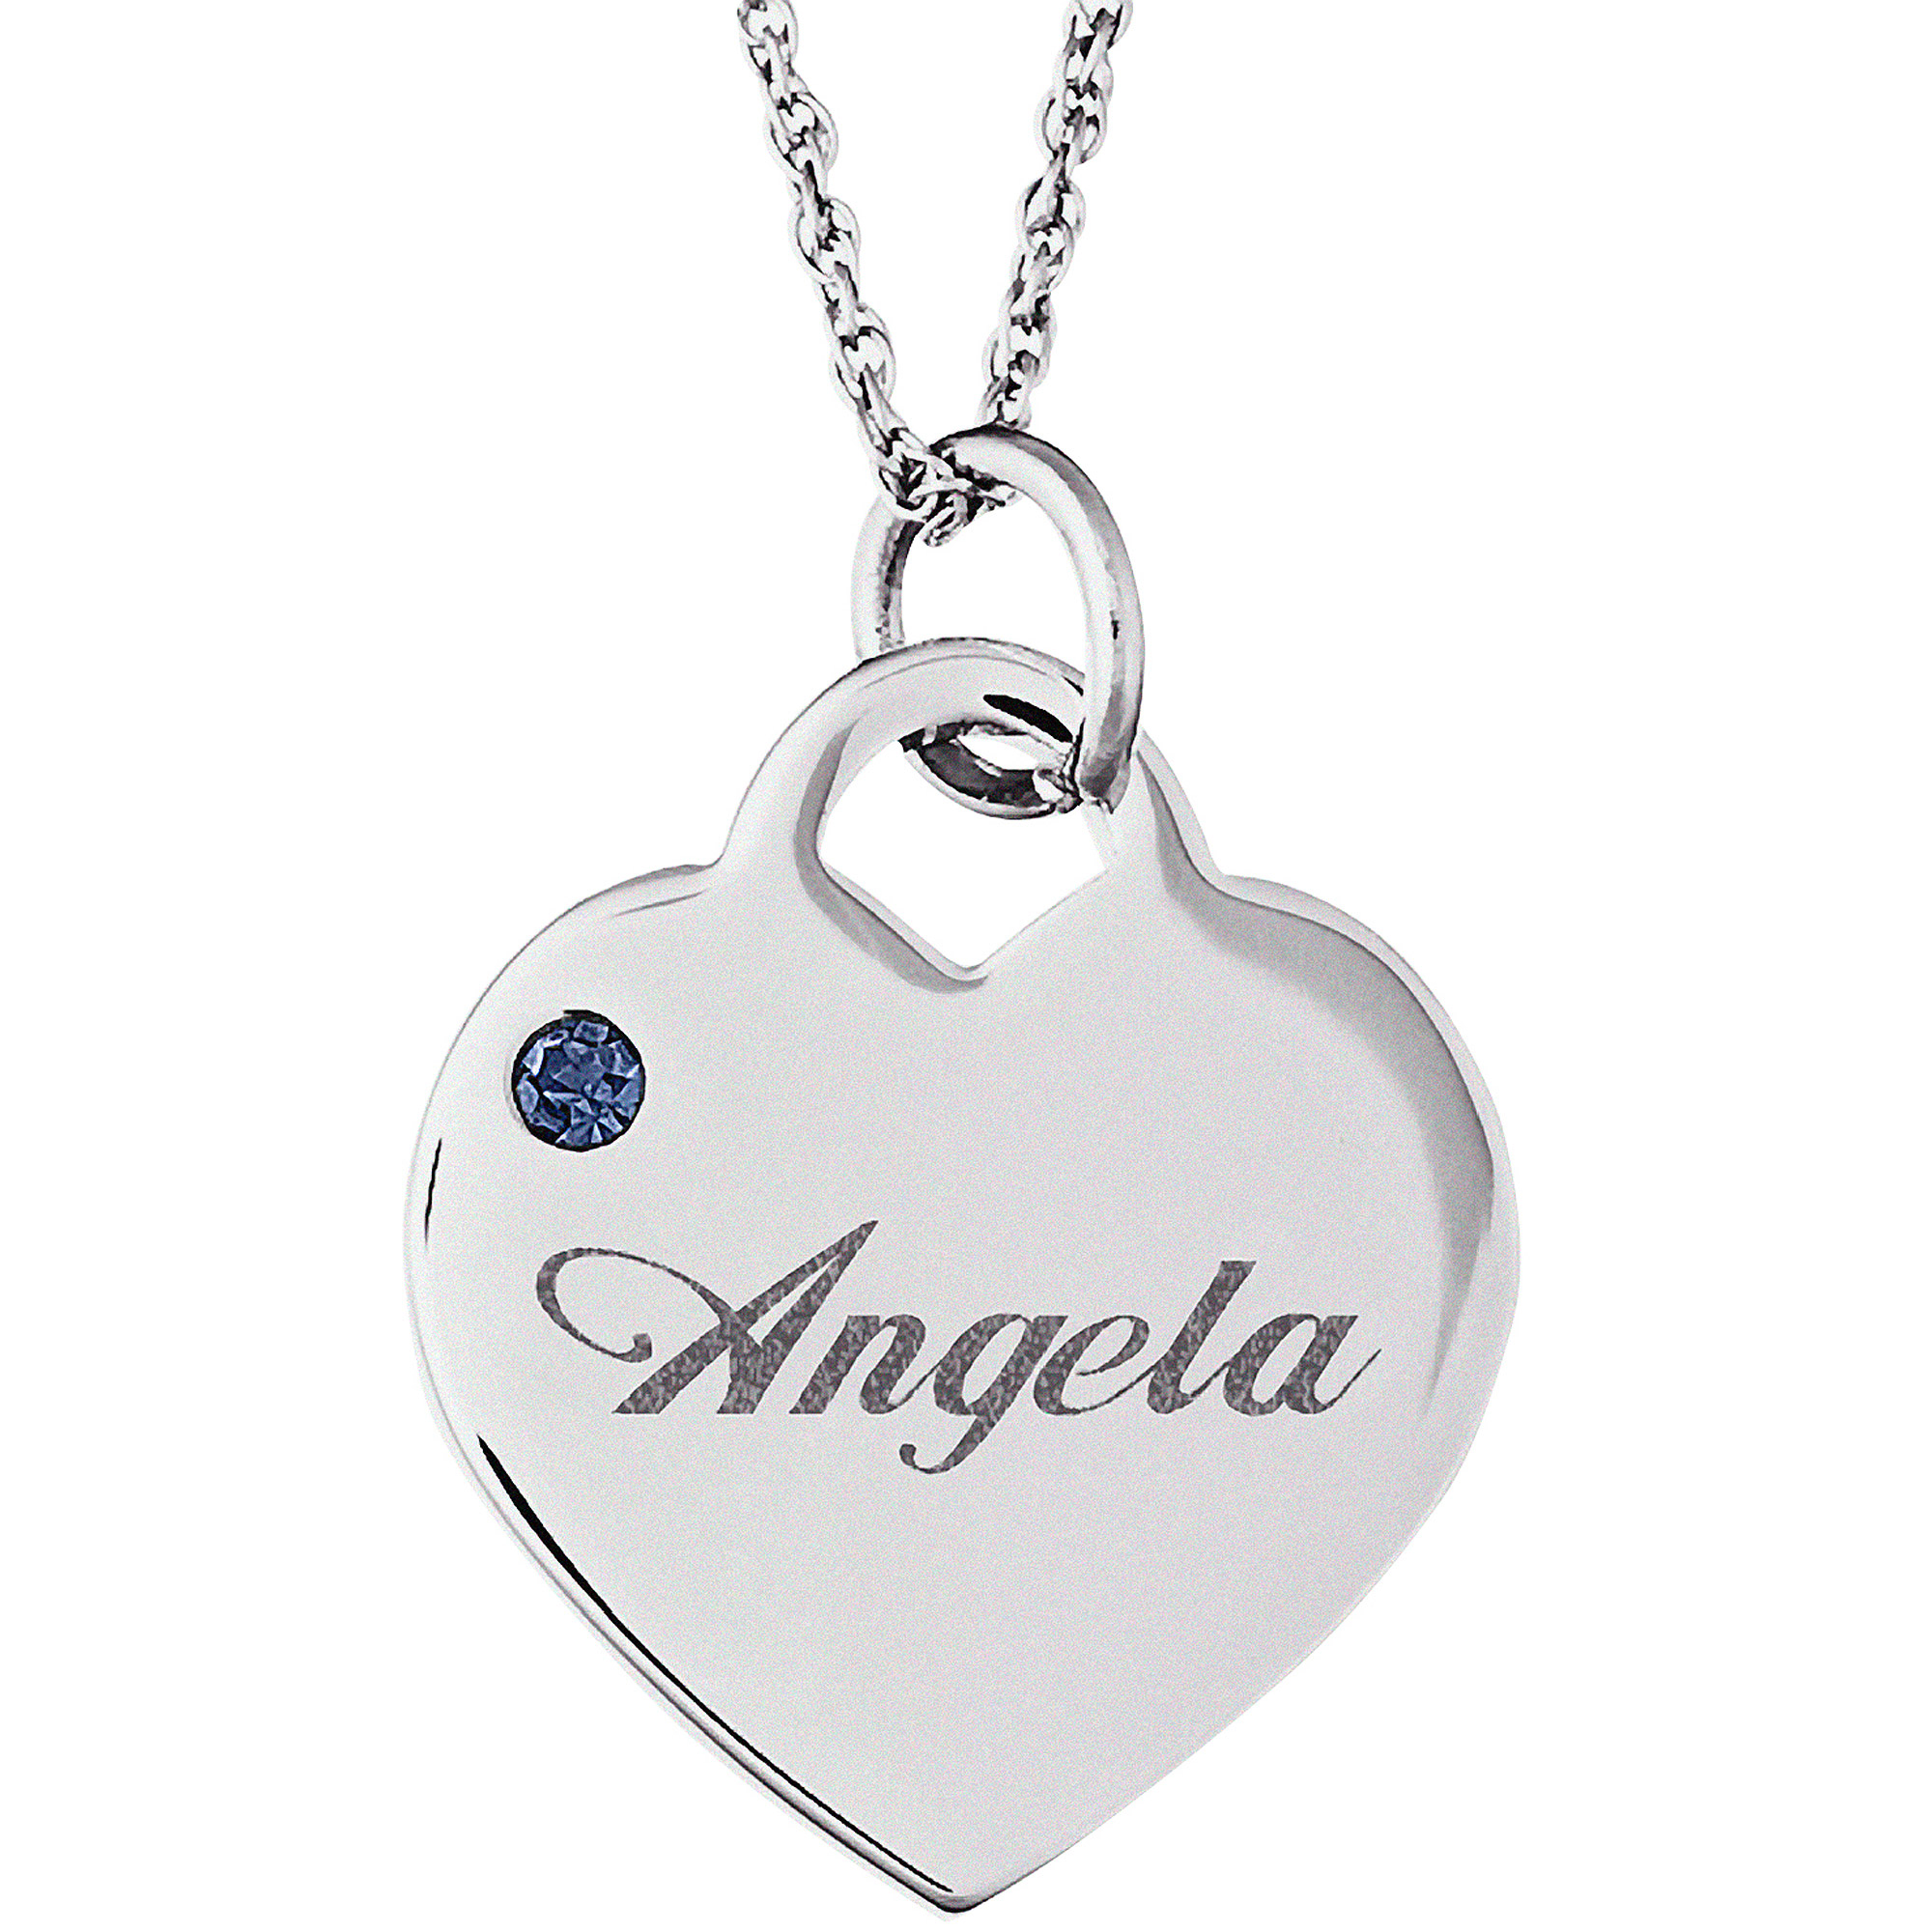 Personalized Silver Tone or 14kt Gold-plated Name and Birthstone Heart Charm Pendant